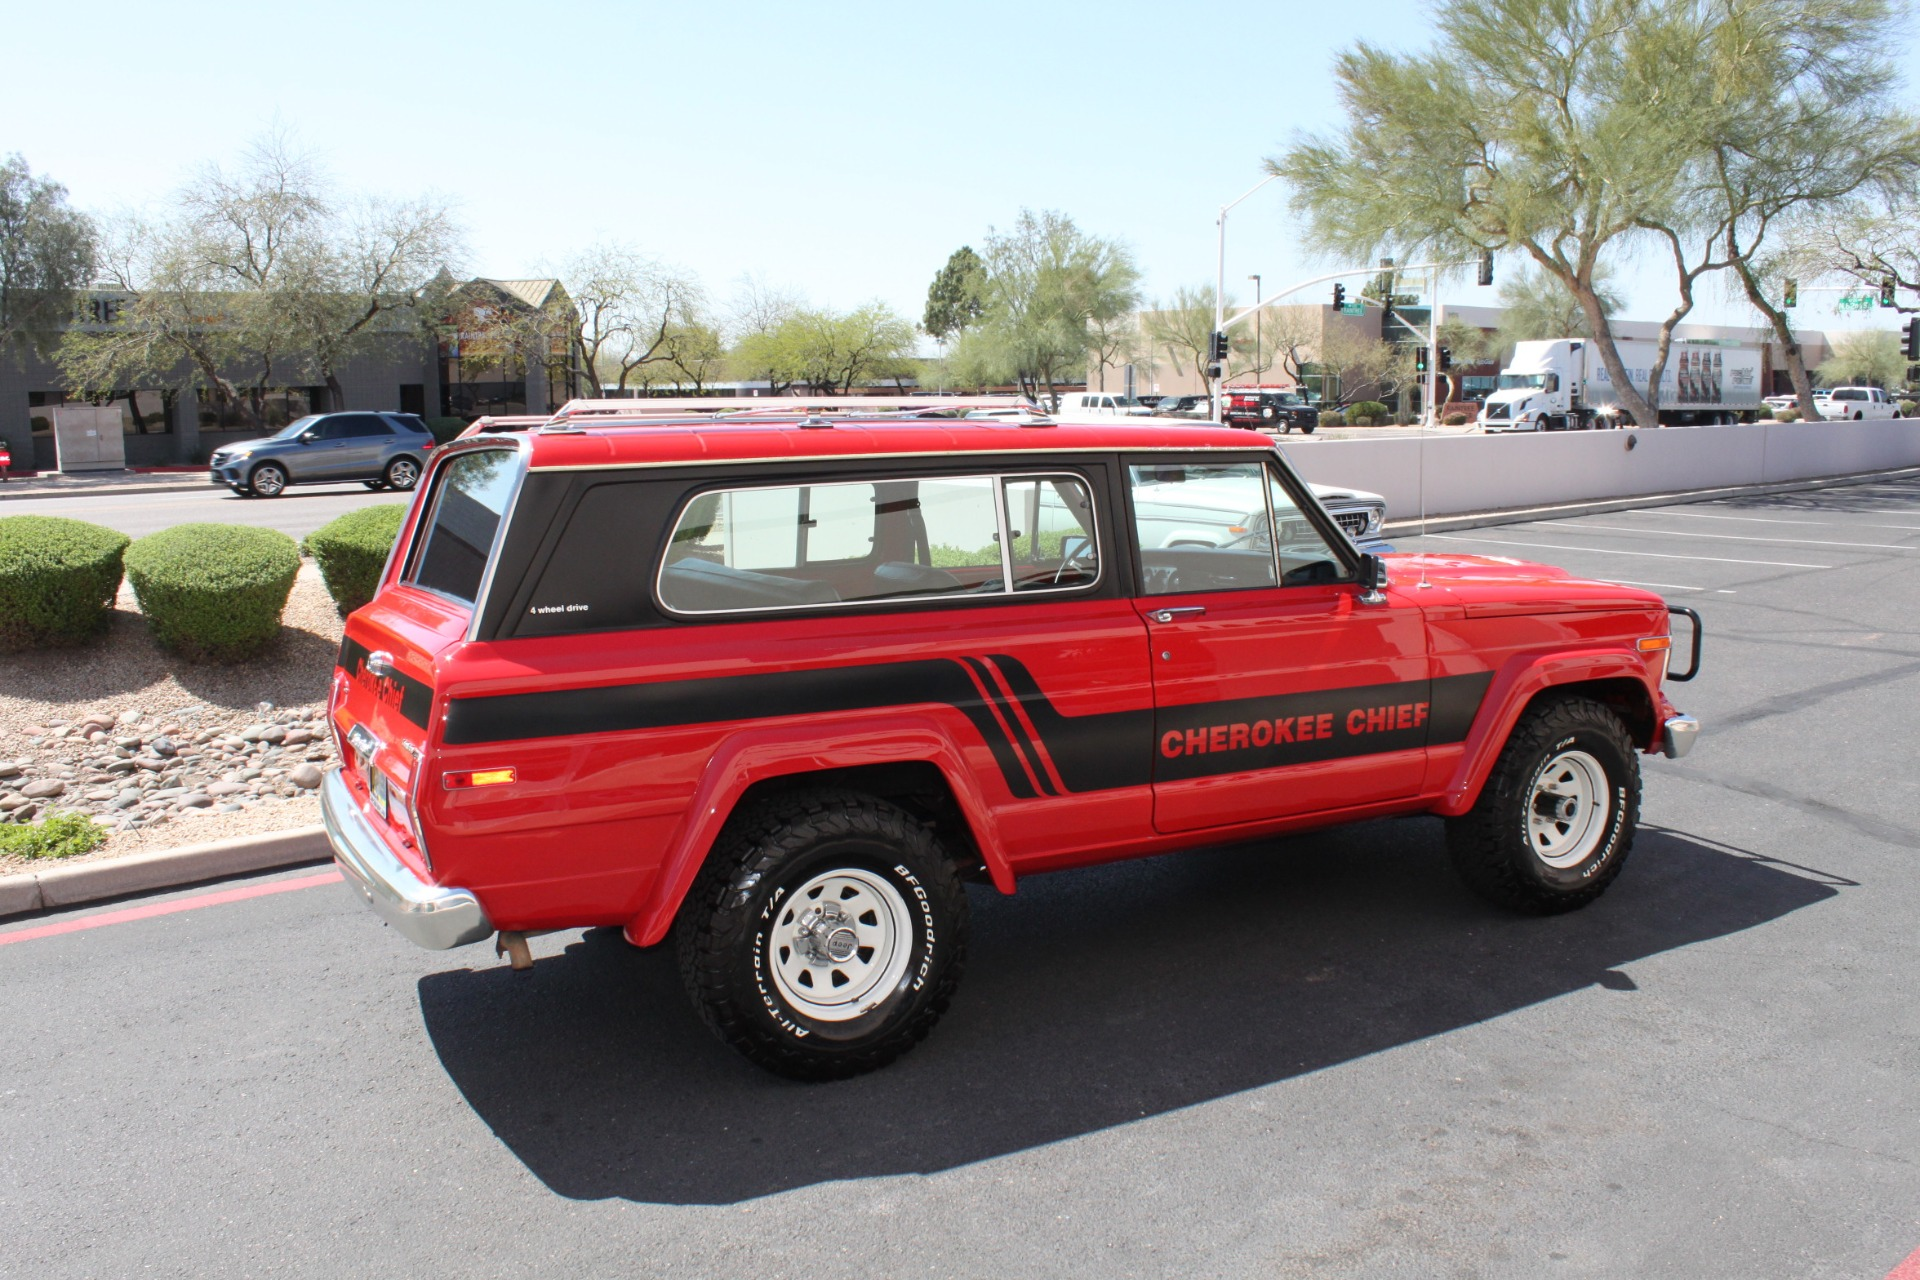 Used-1983-Jeep-Cherokee-Chief-4WD-Chalenger